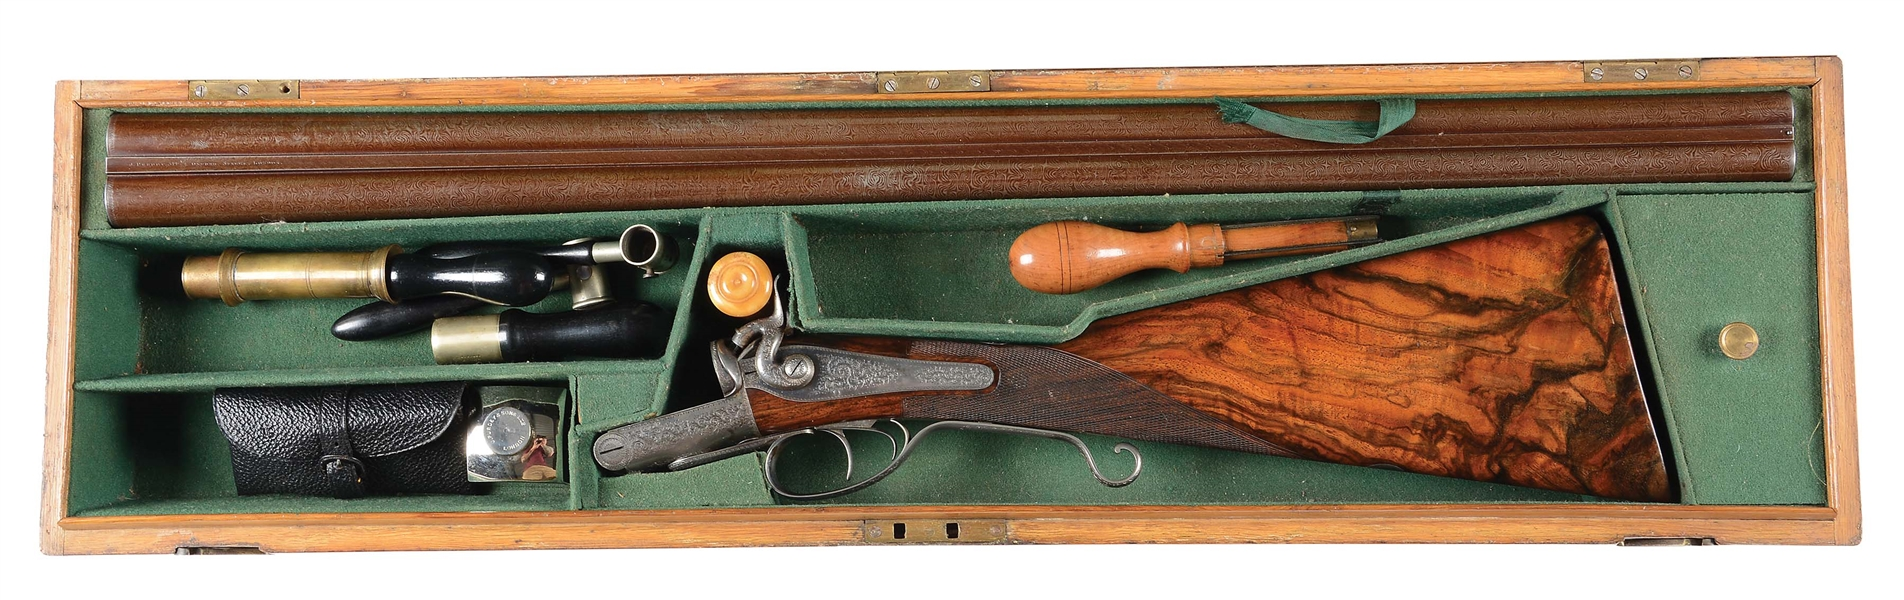 (A) ATTRACTIVE HIGH CONDITION JAMES PURDEY HAMMER SIDE BY SIDE SHOTGUN INCORPORATING UNUSUAL LONG GUARD LEVER WITH CASE AND ACCESSORIES.